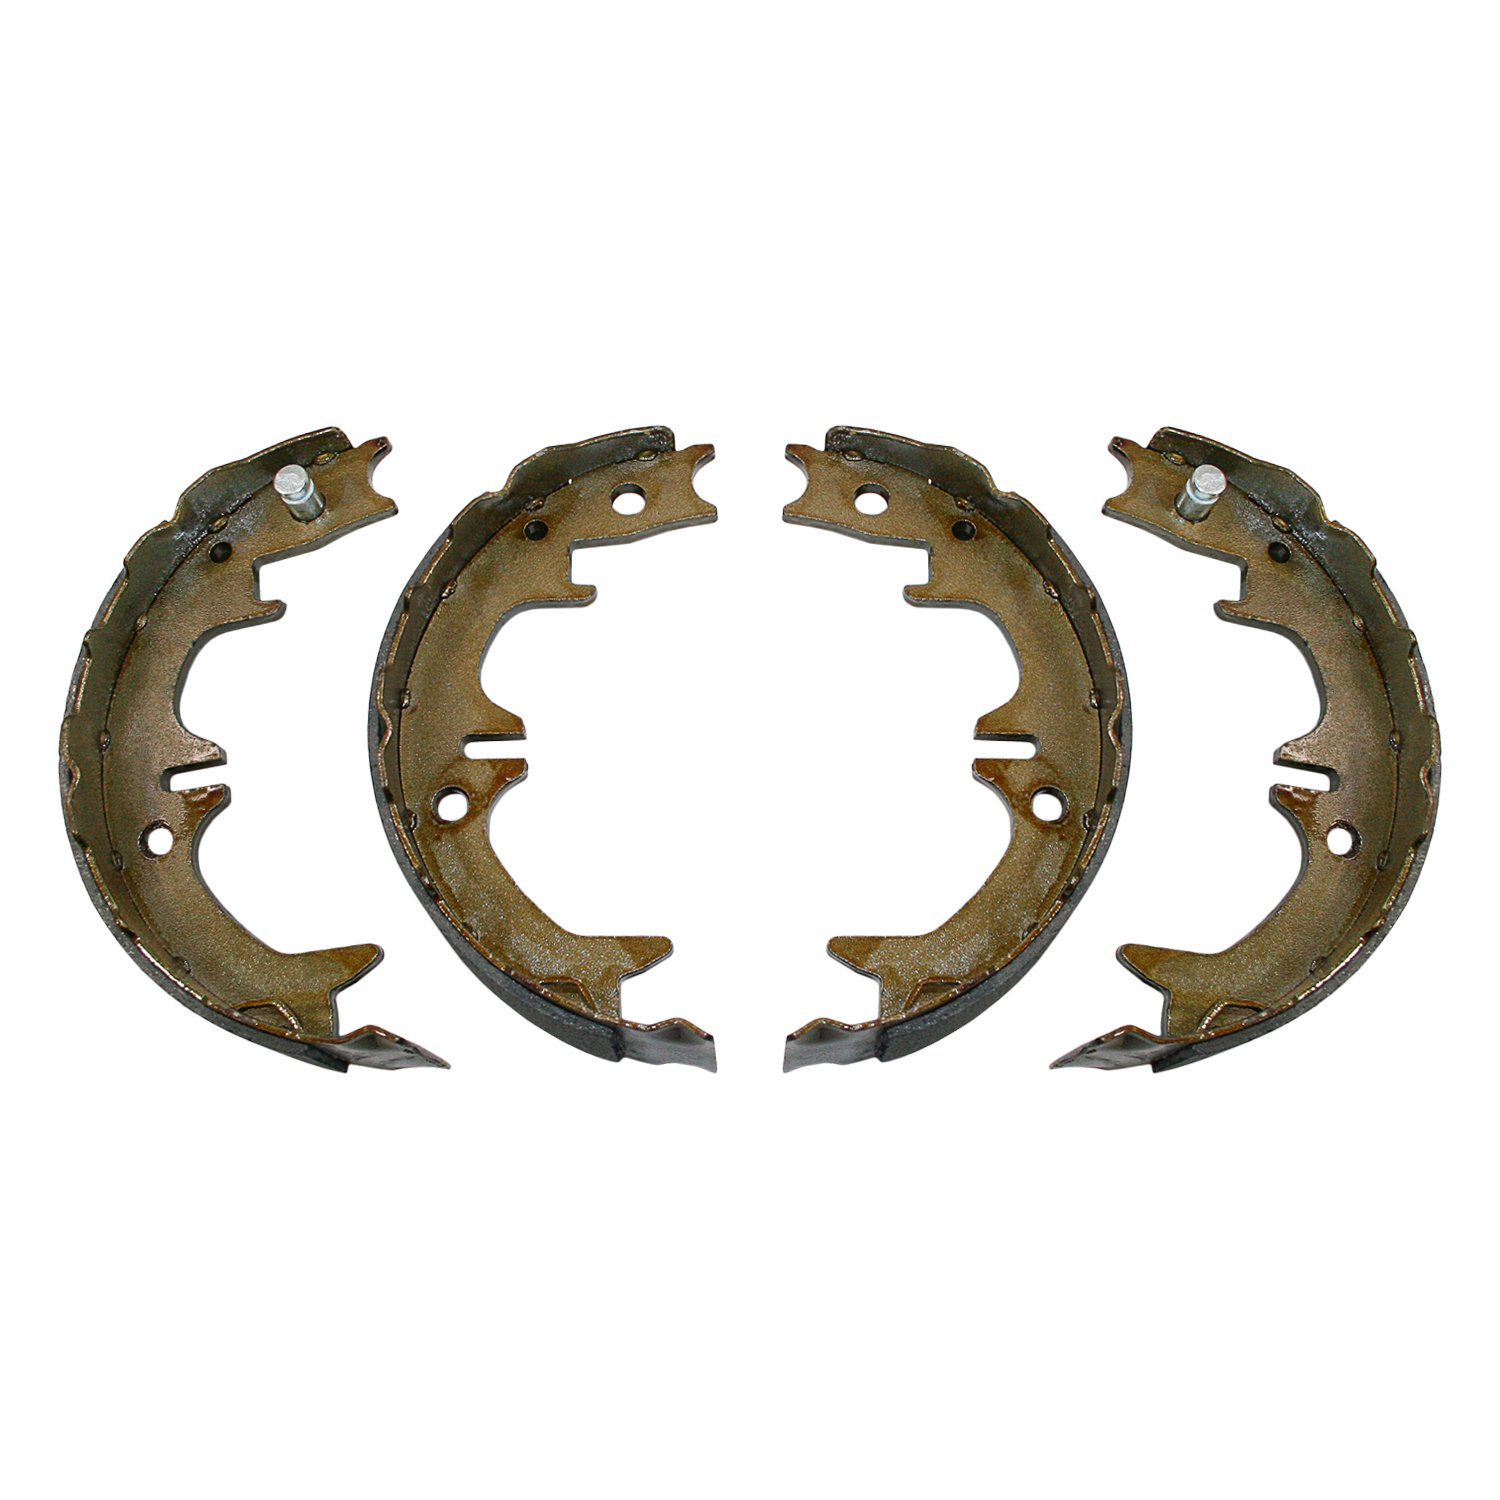 DuraGo BS859 Parking Brake Shoe